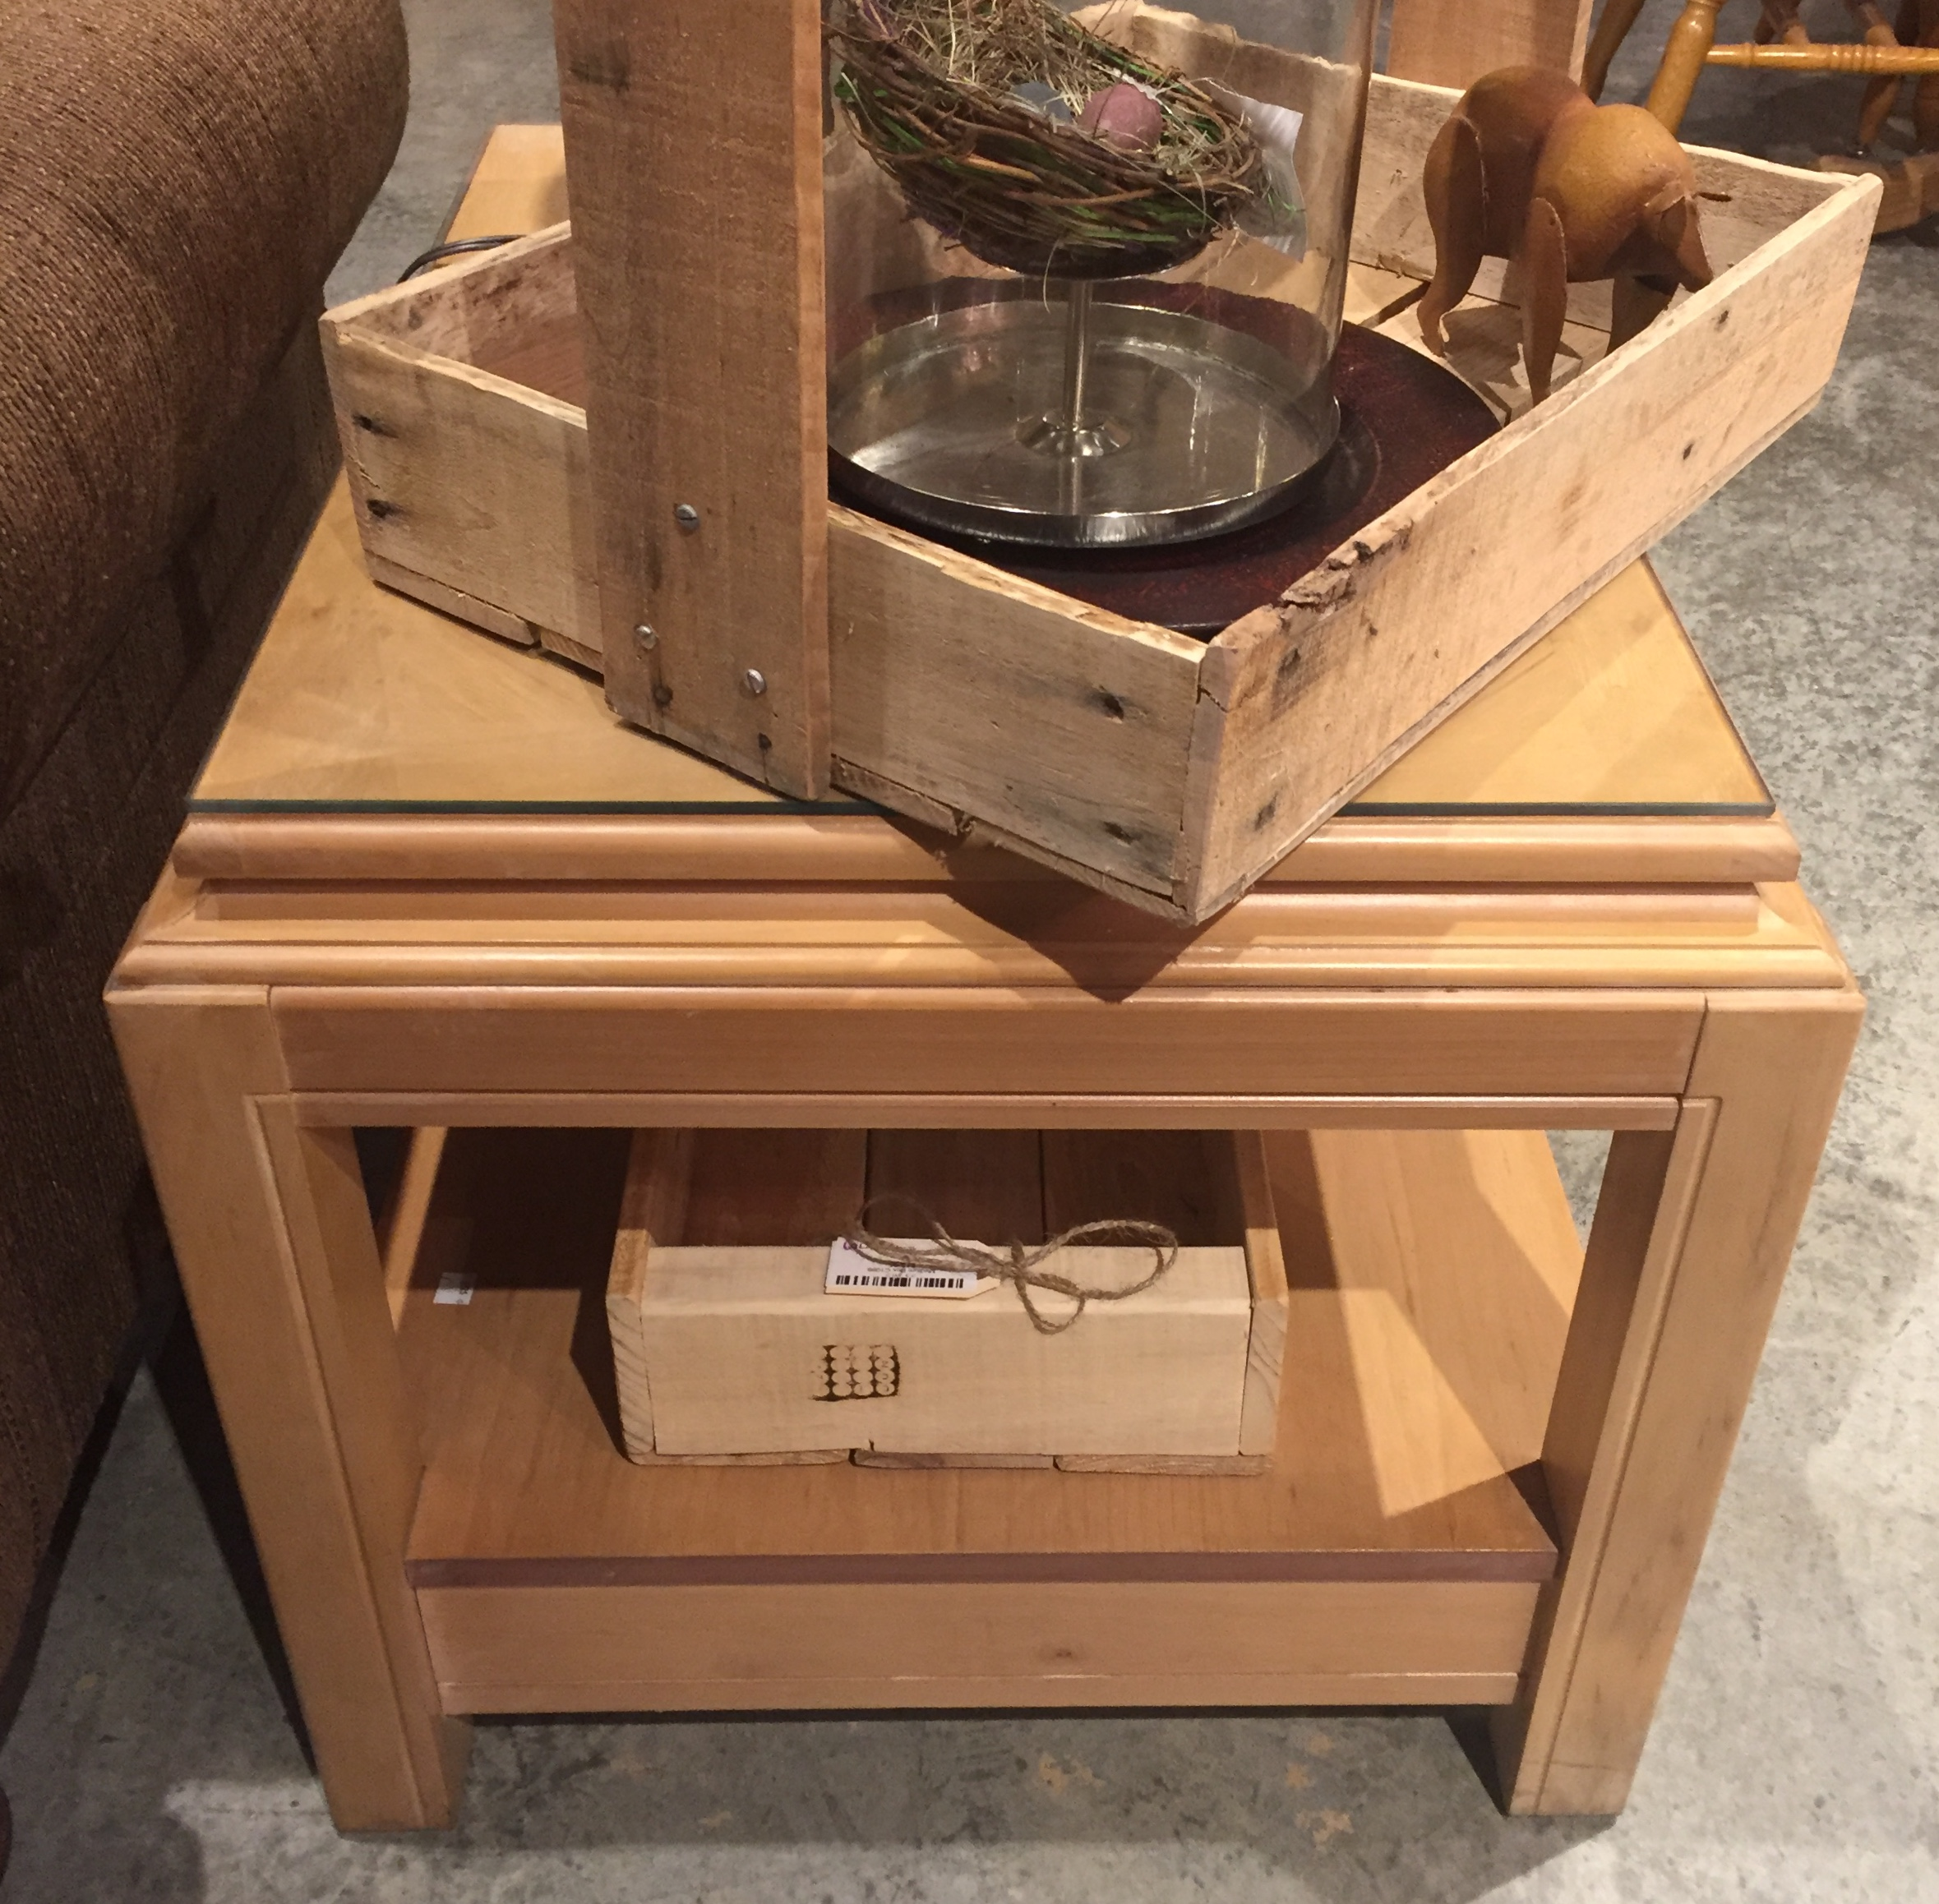 Blond End Table $59.95 - C1125 24340